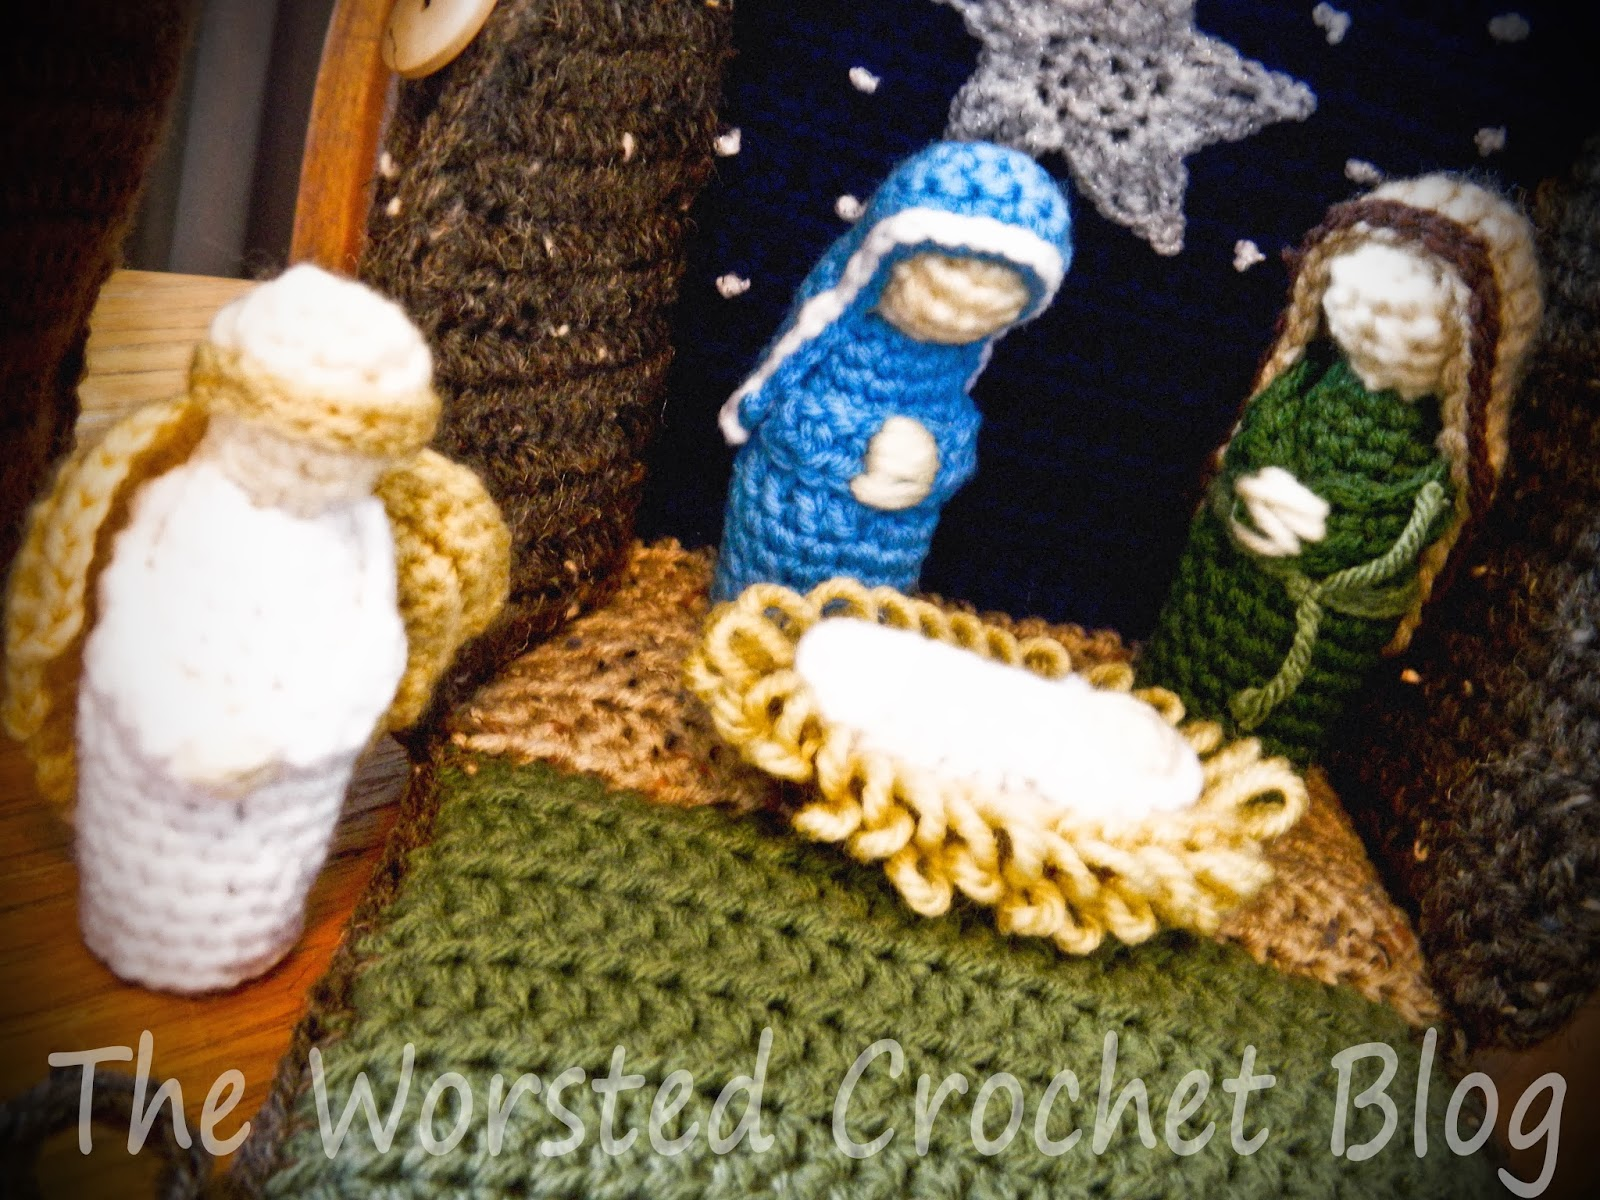 The Worsted Crochet Blog: Crochet Nativity Set (Part One)